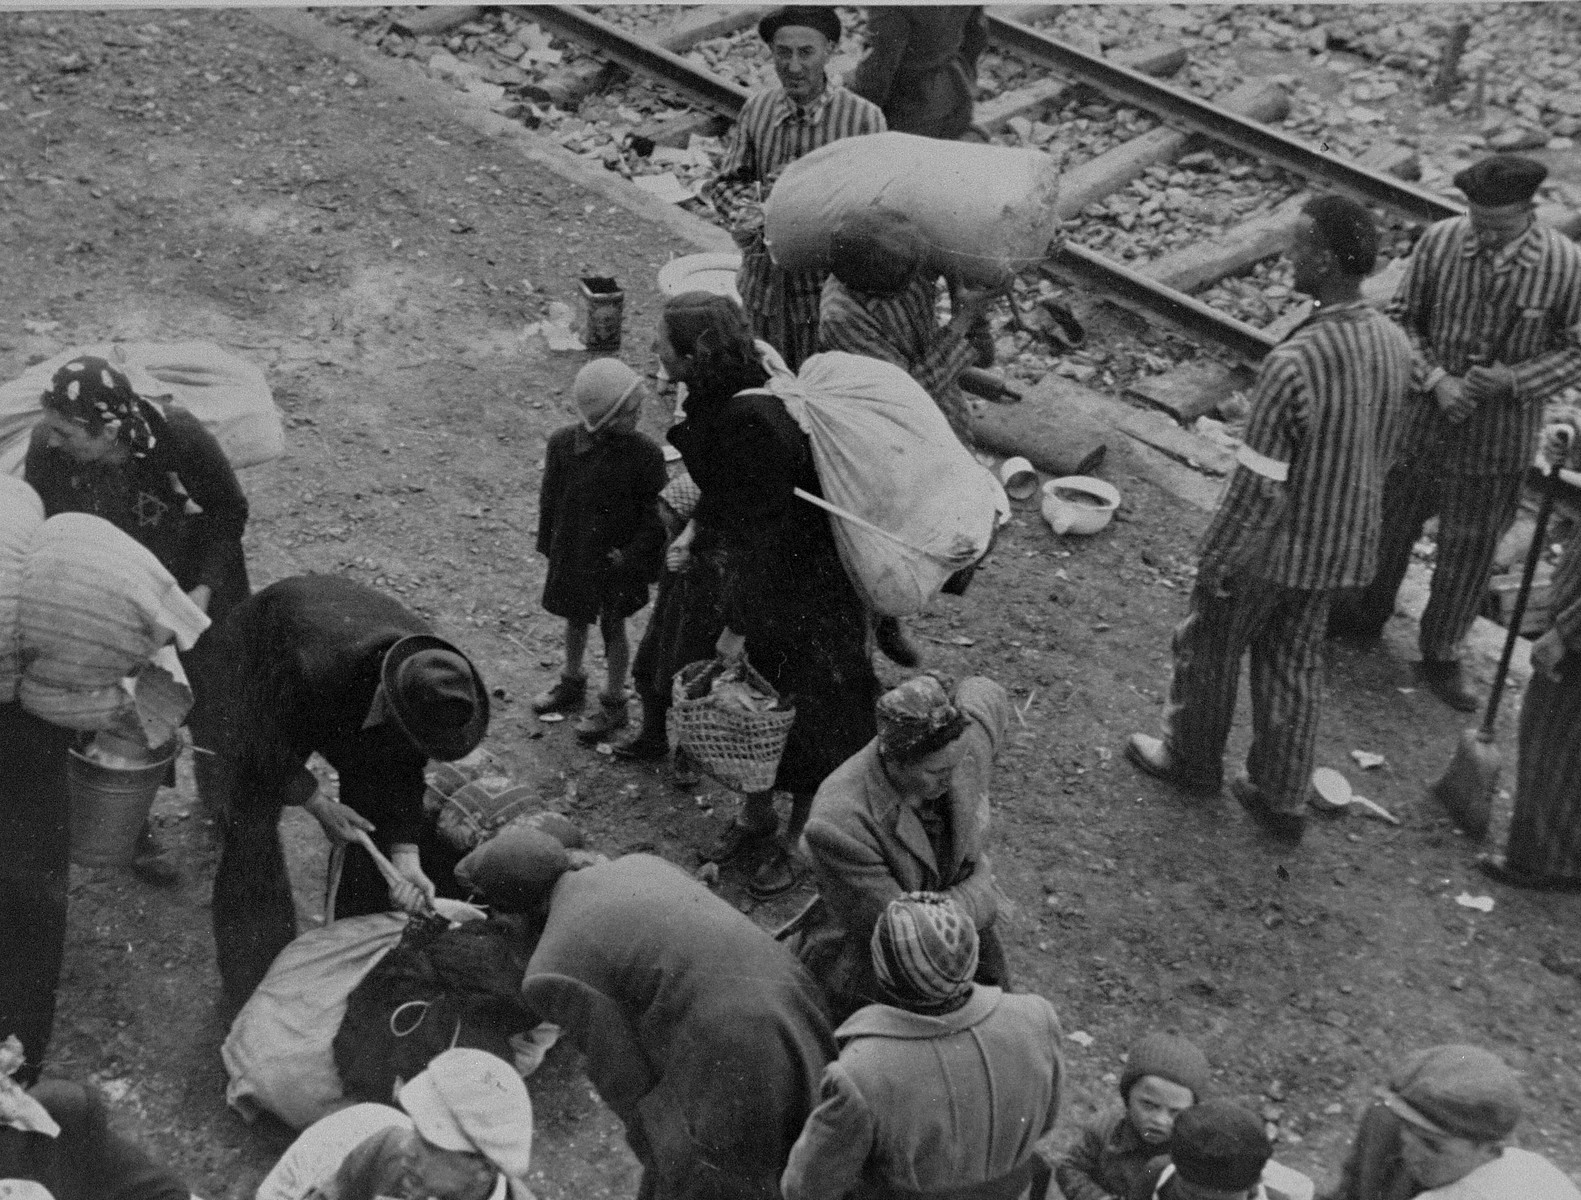 New arrivals to Auschwitz from Subcarpathian Rus attend to their personal belongings.